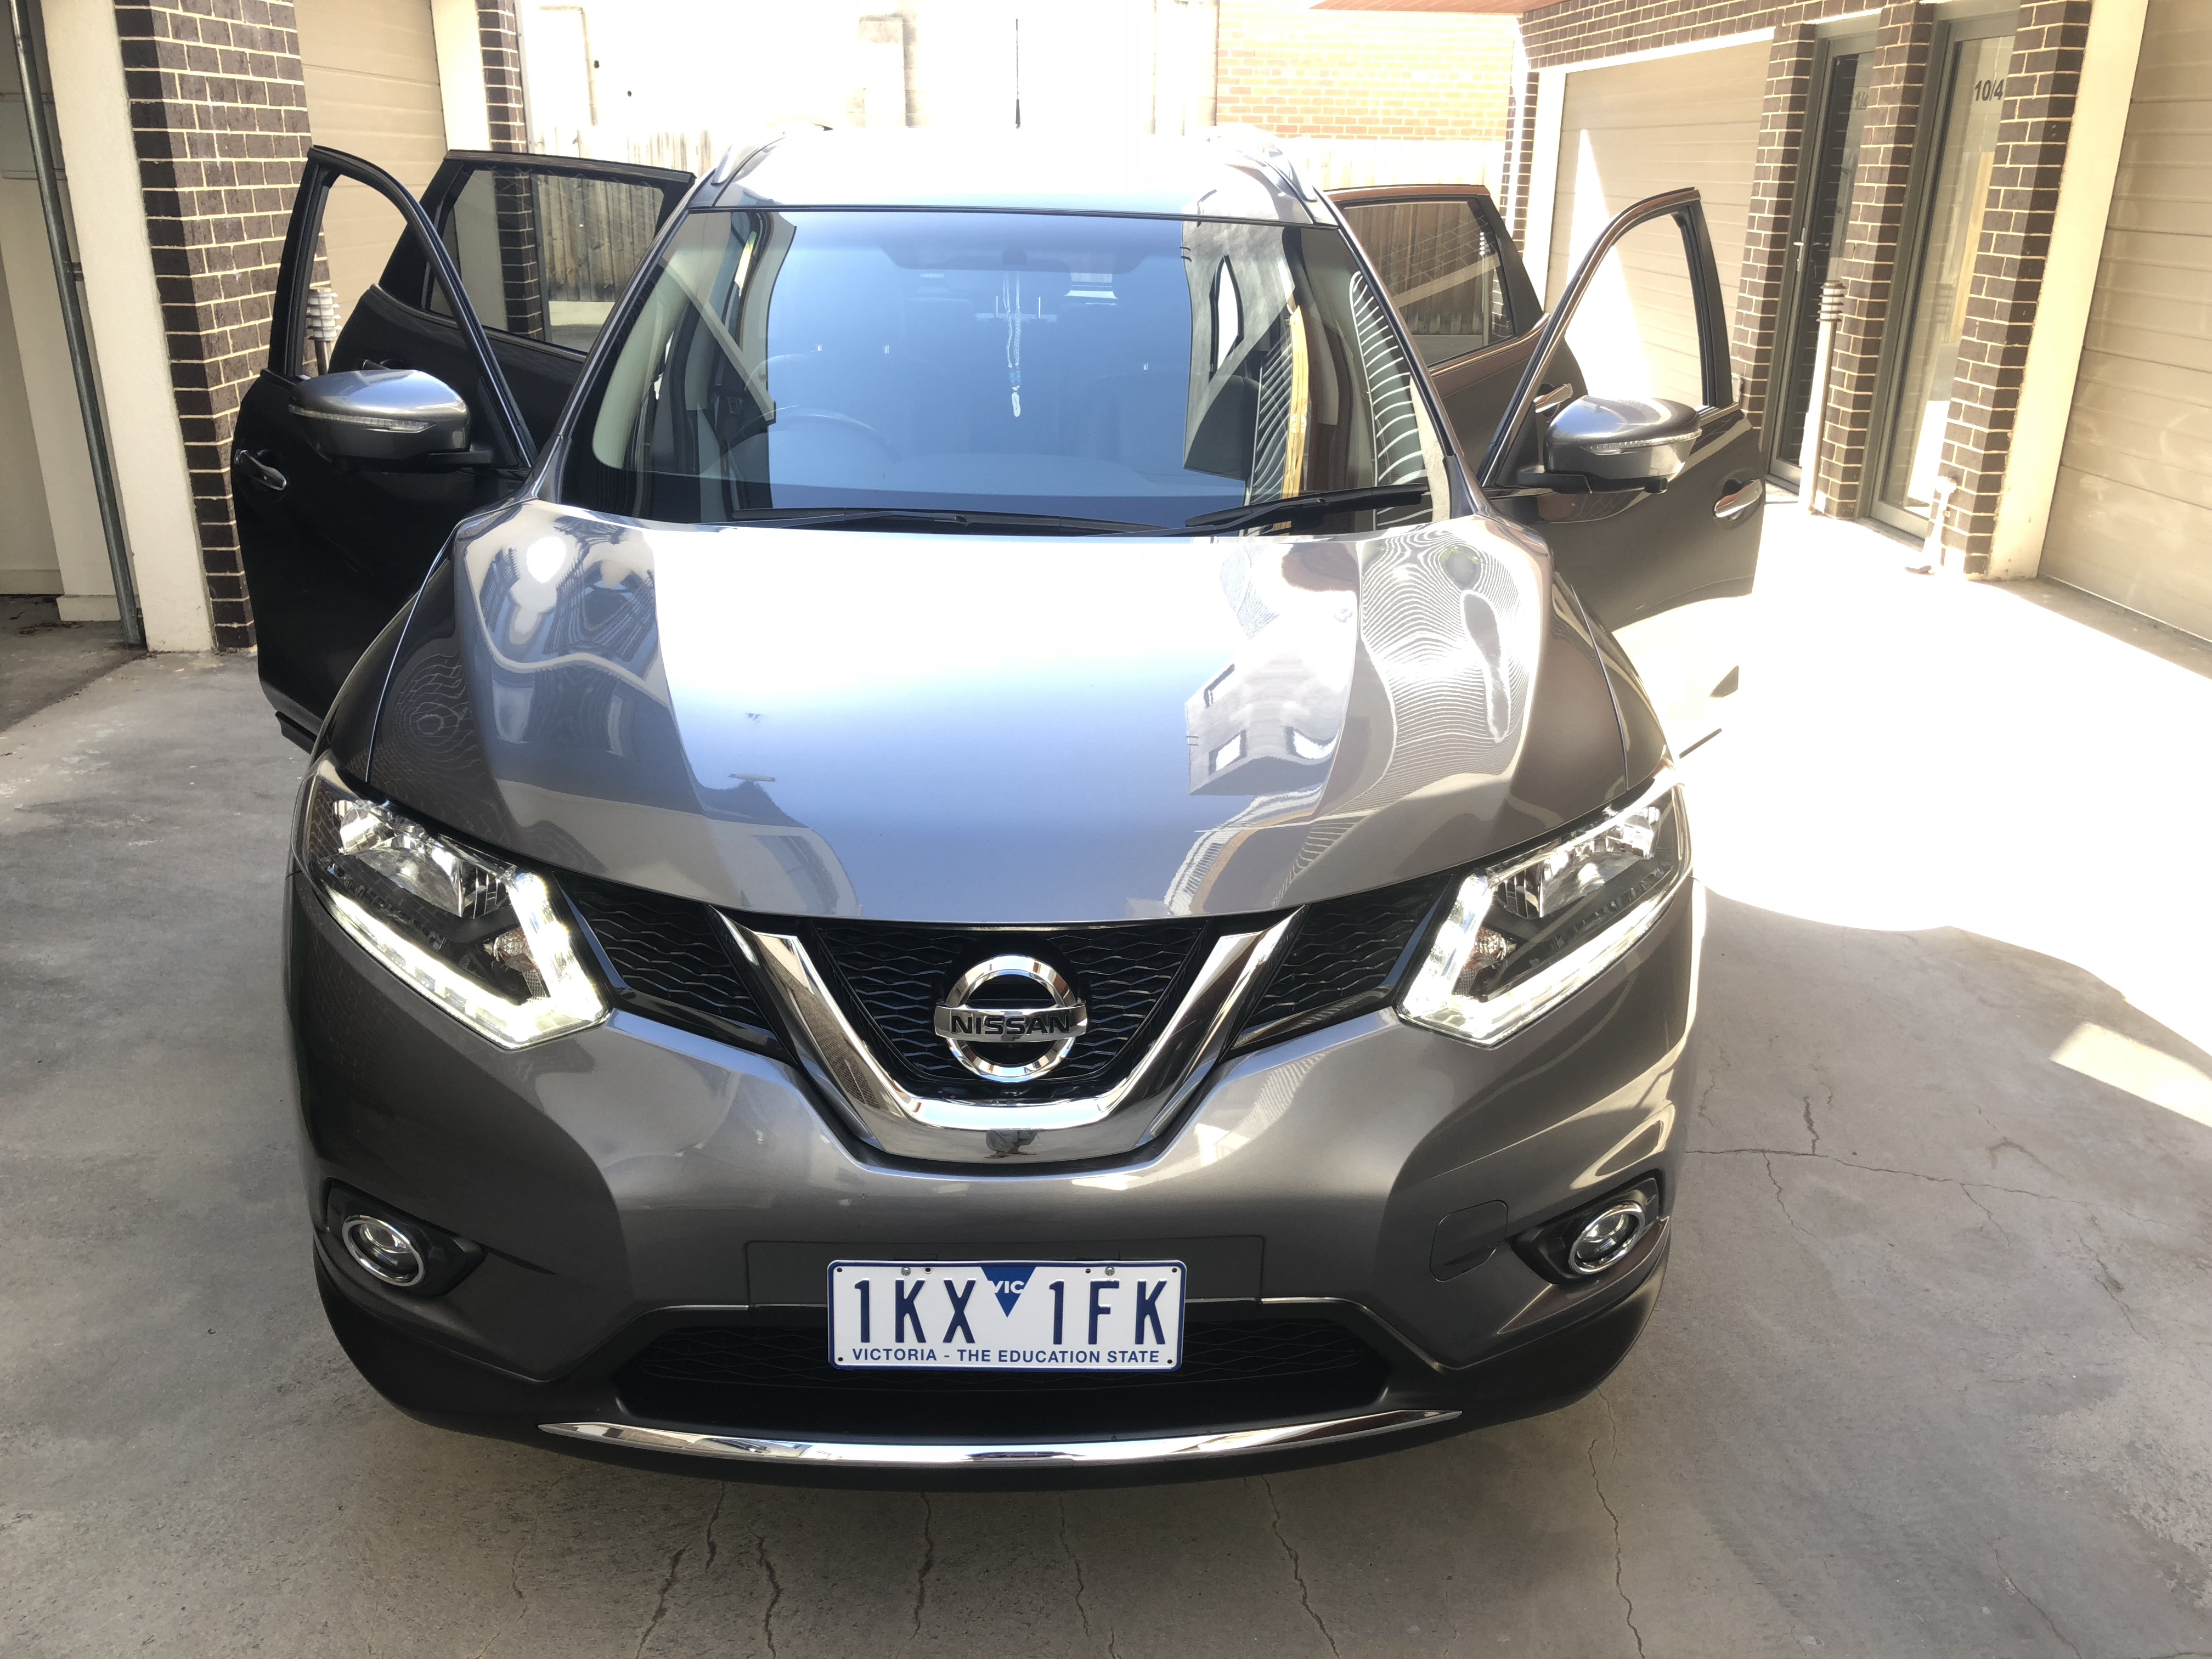 Picture of Jean Roger Emmanuel's 2015 Nissan X trail